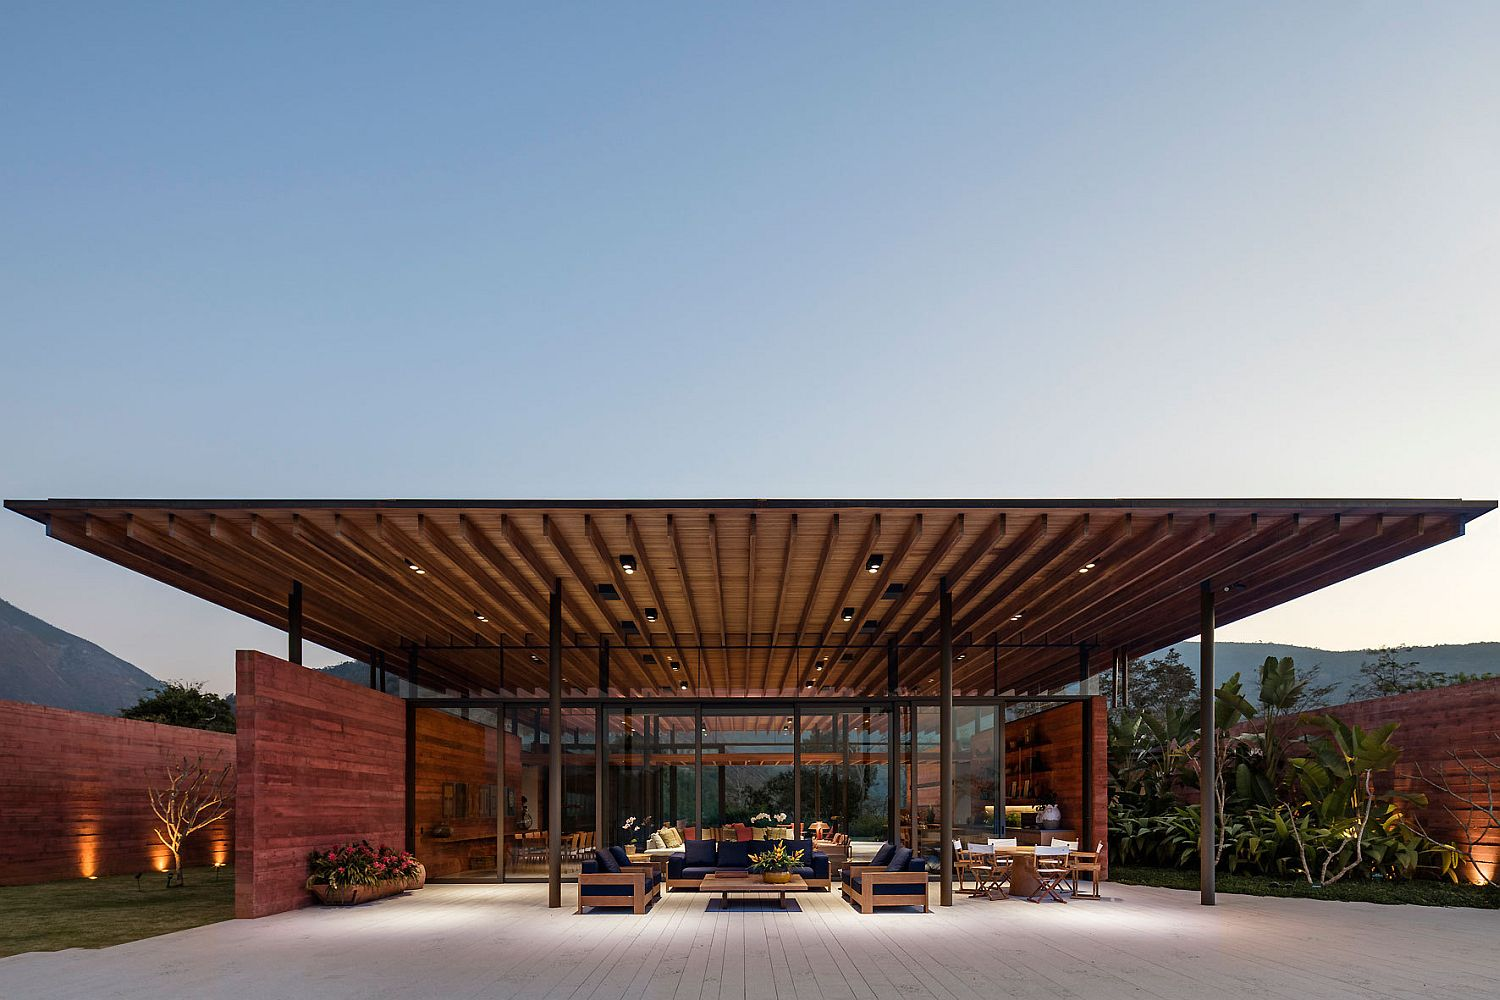 Casa Terra in Brazil created from intersecting planes and walls